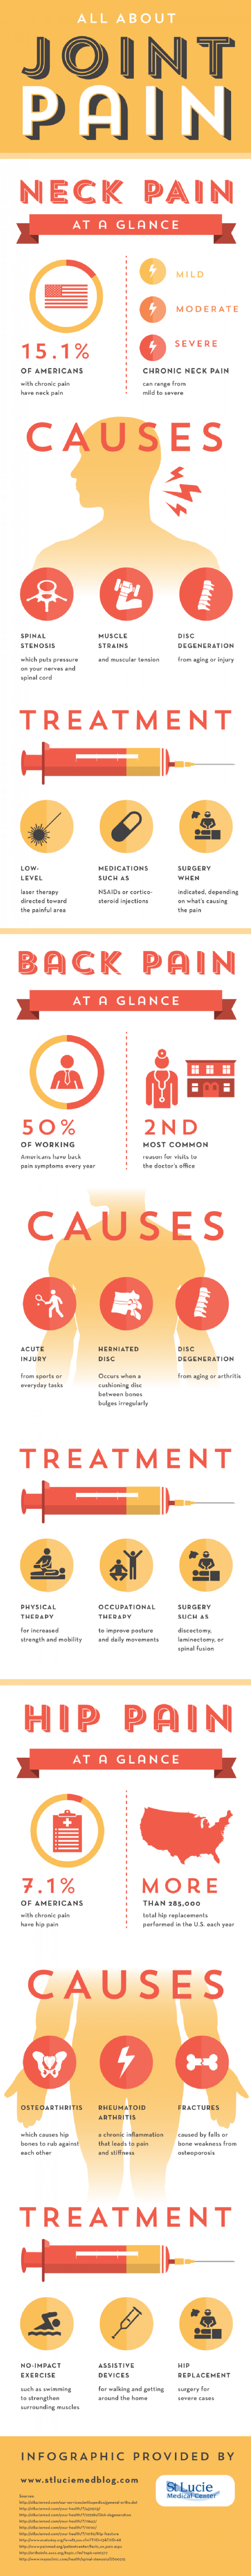 All About Joint Pain Infographic